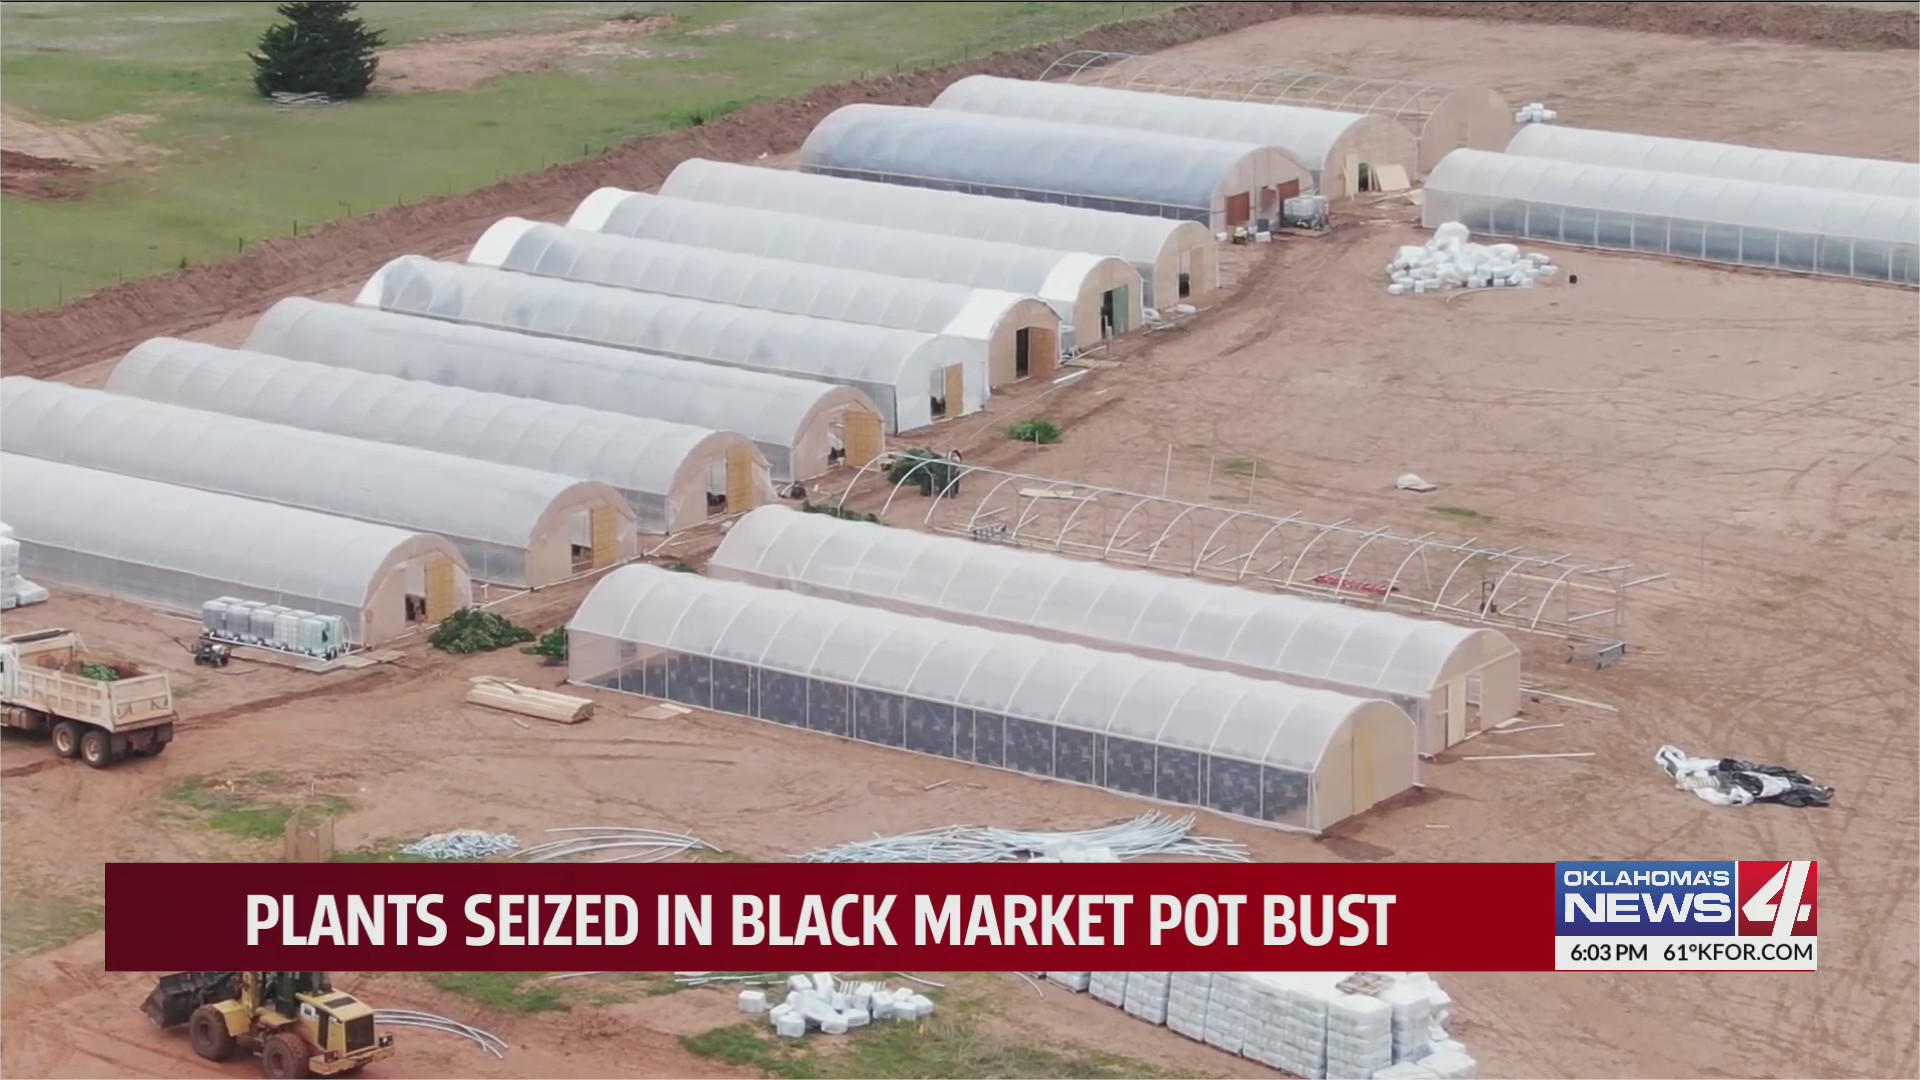 Oklahoma Bureau of Narcotics raids home, medical marijuana farm in Guthrie for selling product on black market